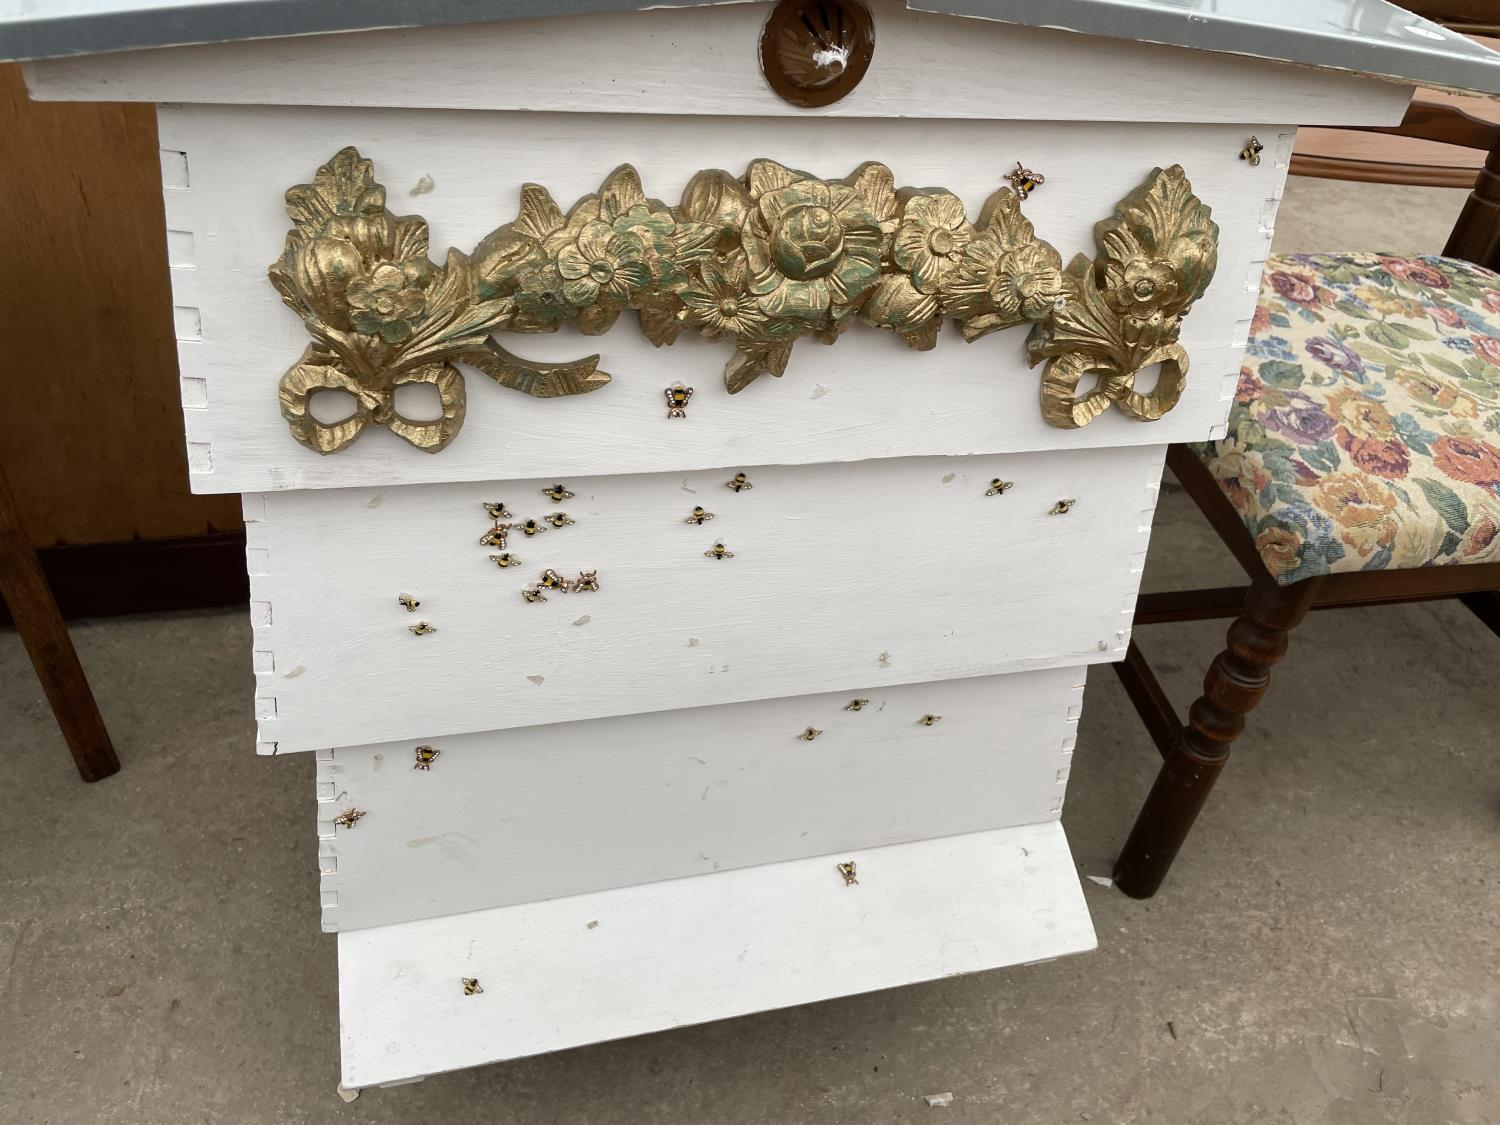 A FOUR TIER WHITE PAINTED FORMER BEEHIVE, DECORATED WITH BEES AND FLOWERS - Image 4 of 4